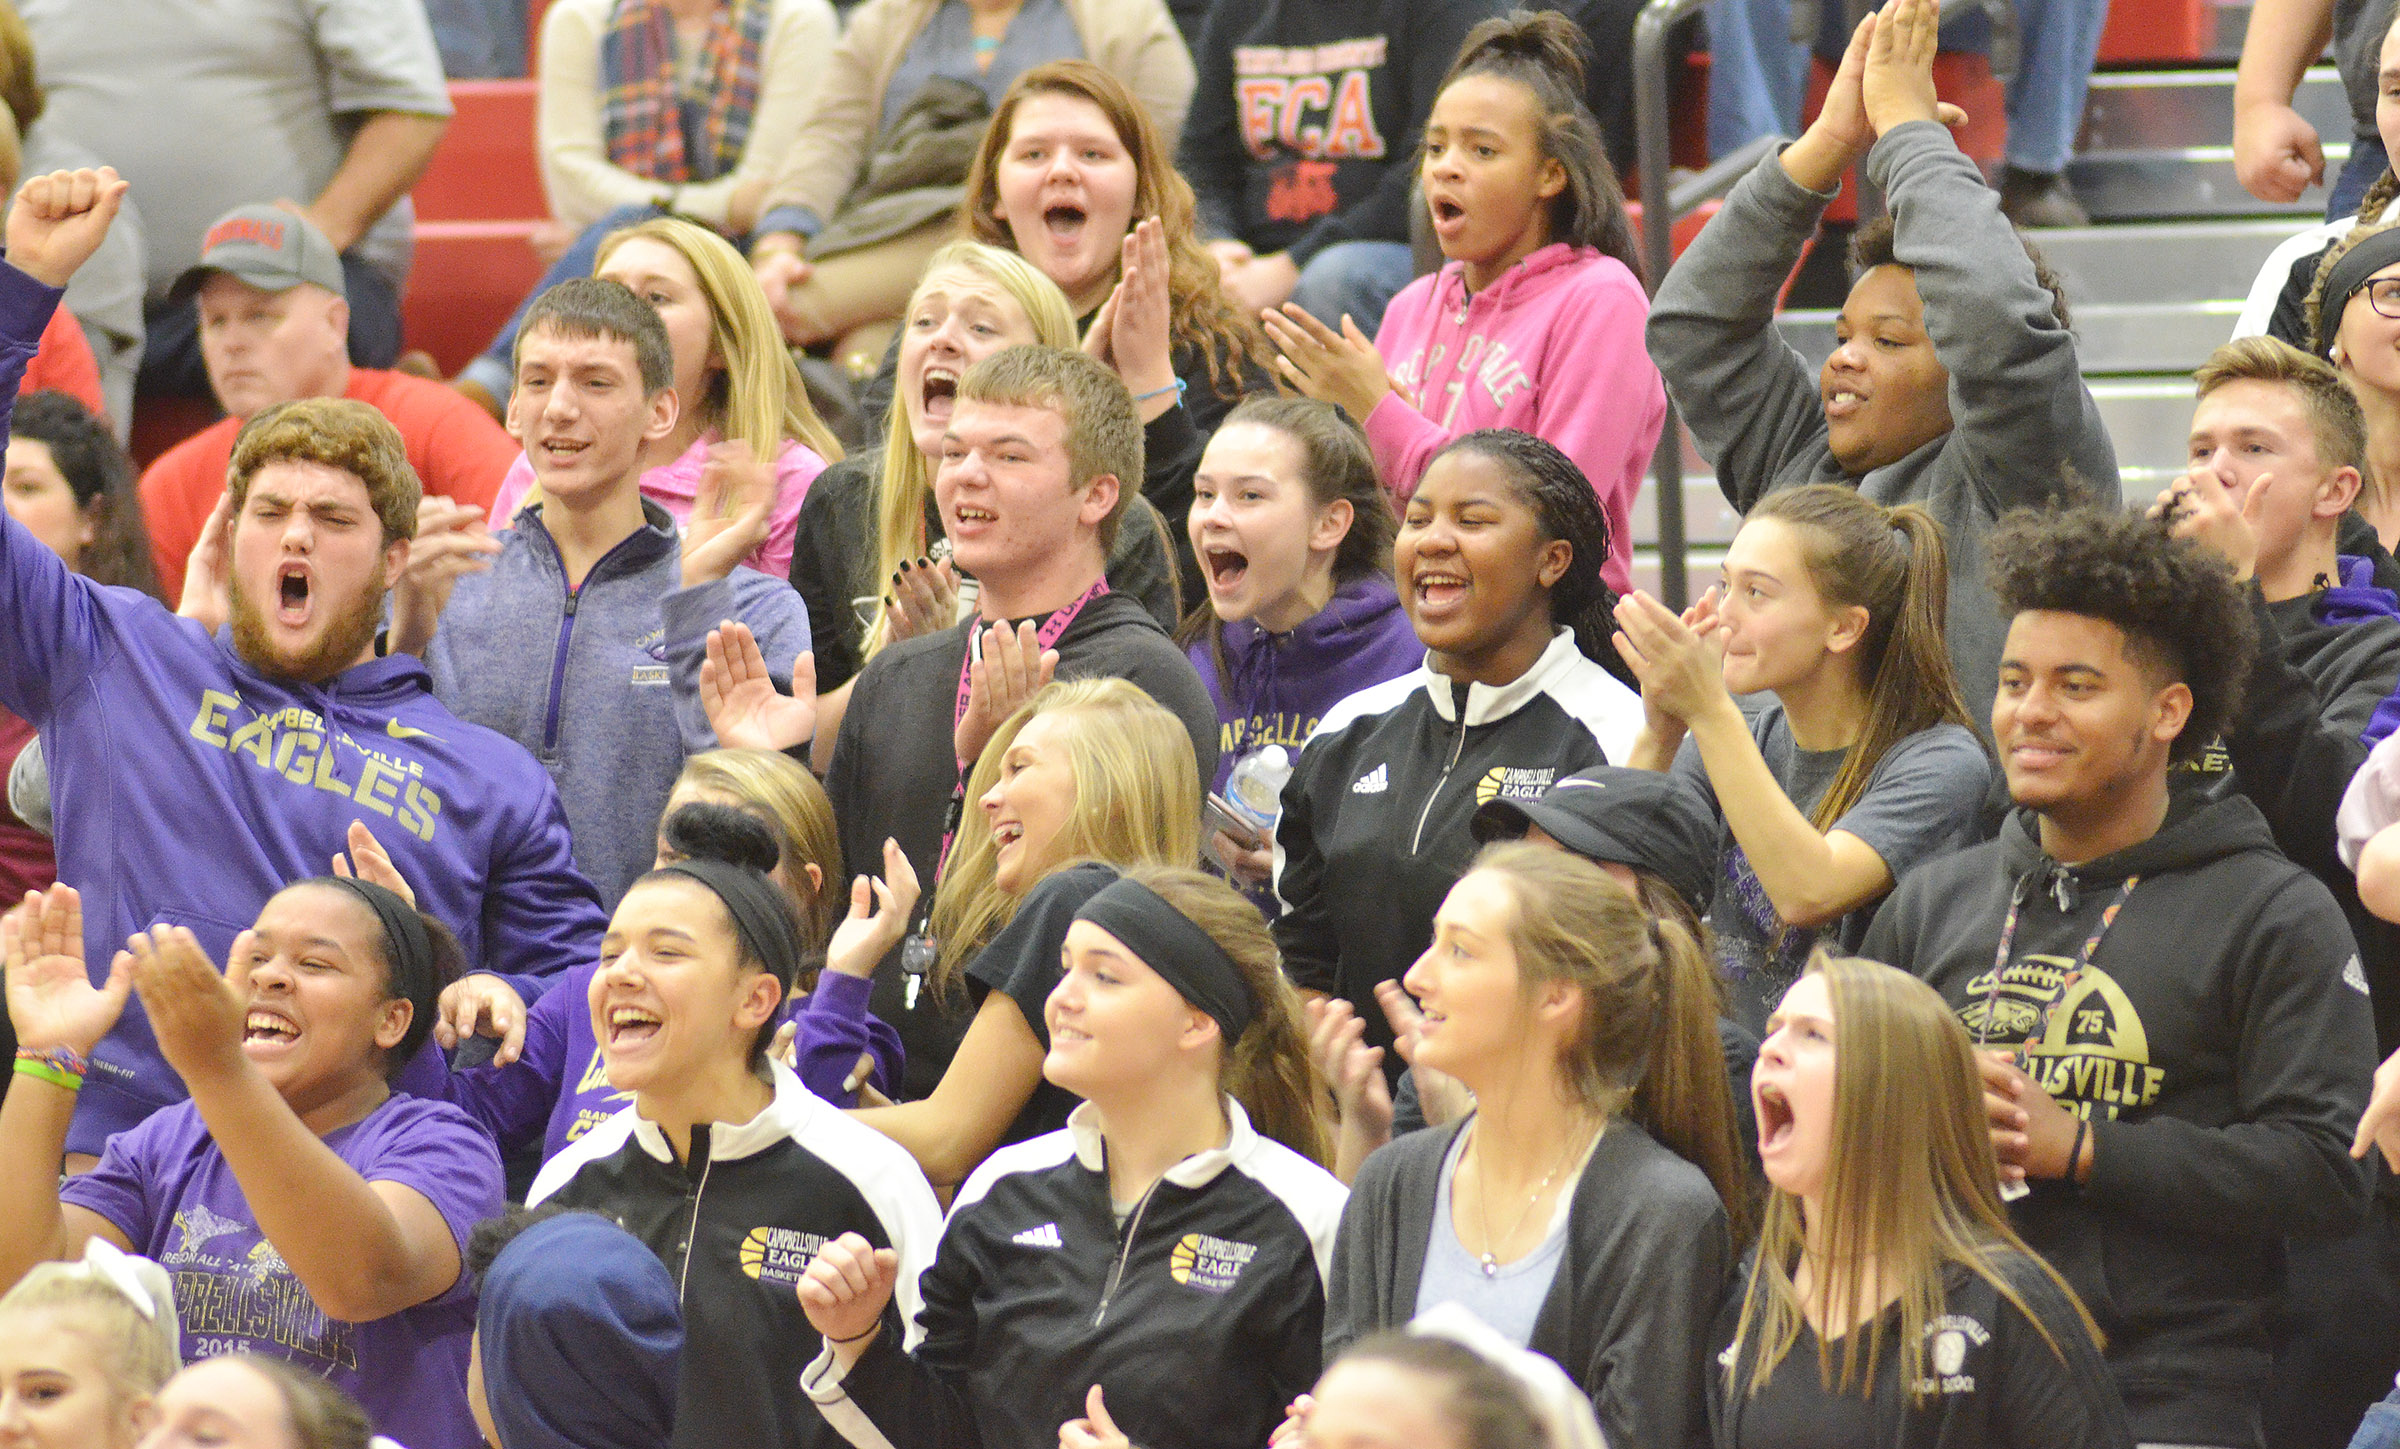 CHS students cheer as their team defeats Taylor County.